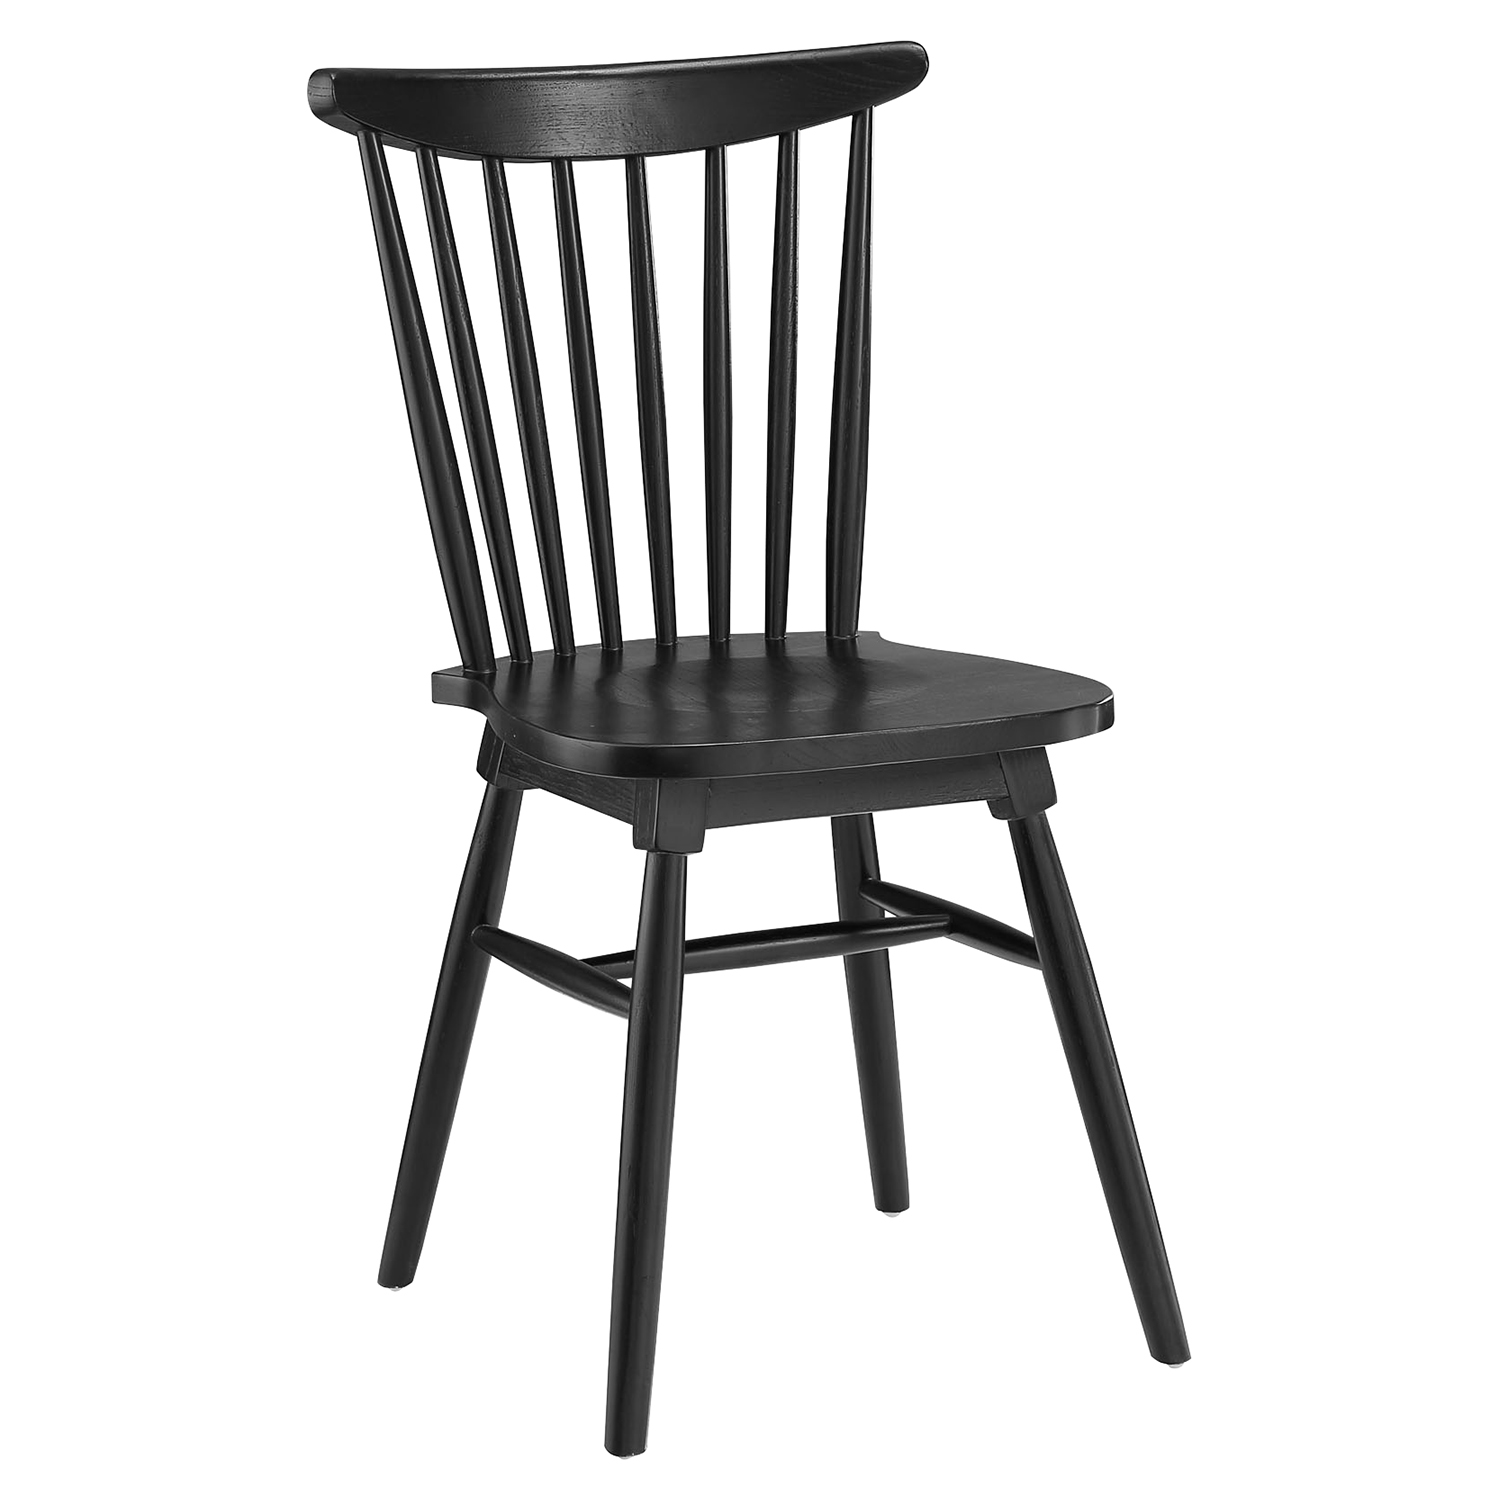 Amble Slat Wood Dining Side Chair - Black - EEI-1539-BLK